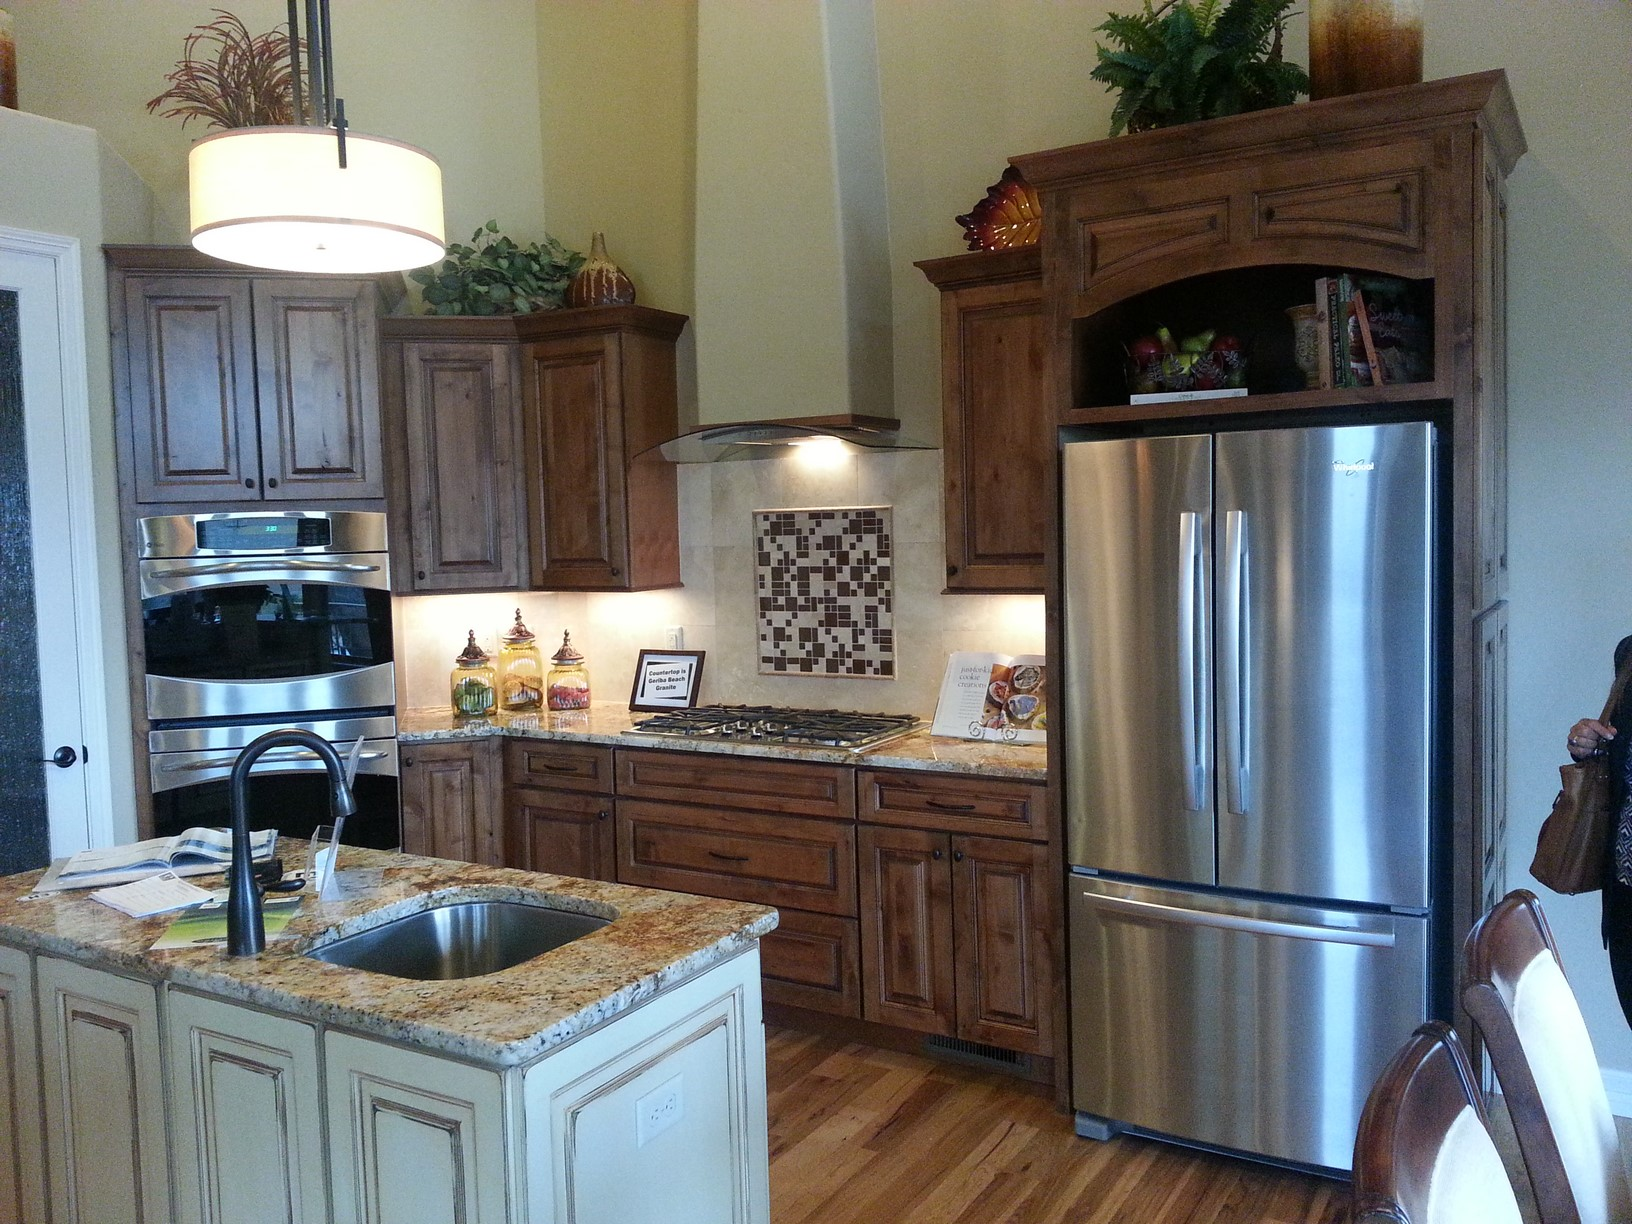 Advanced Remodeling Services